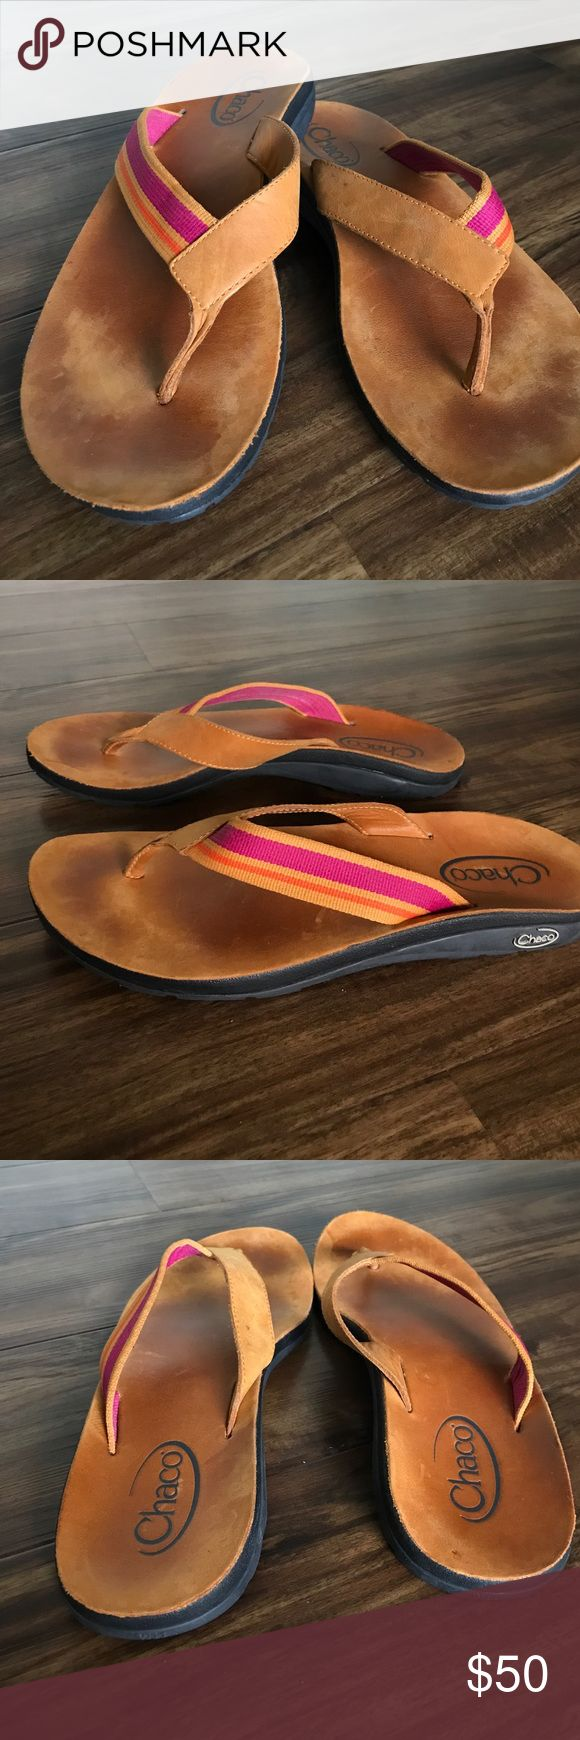 5771cc12b chaco flip flops for sale   OFF54% Discounts